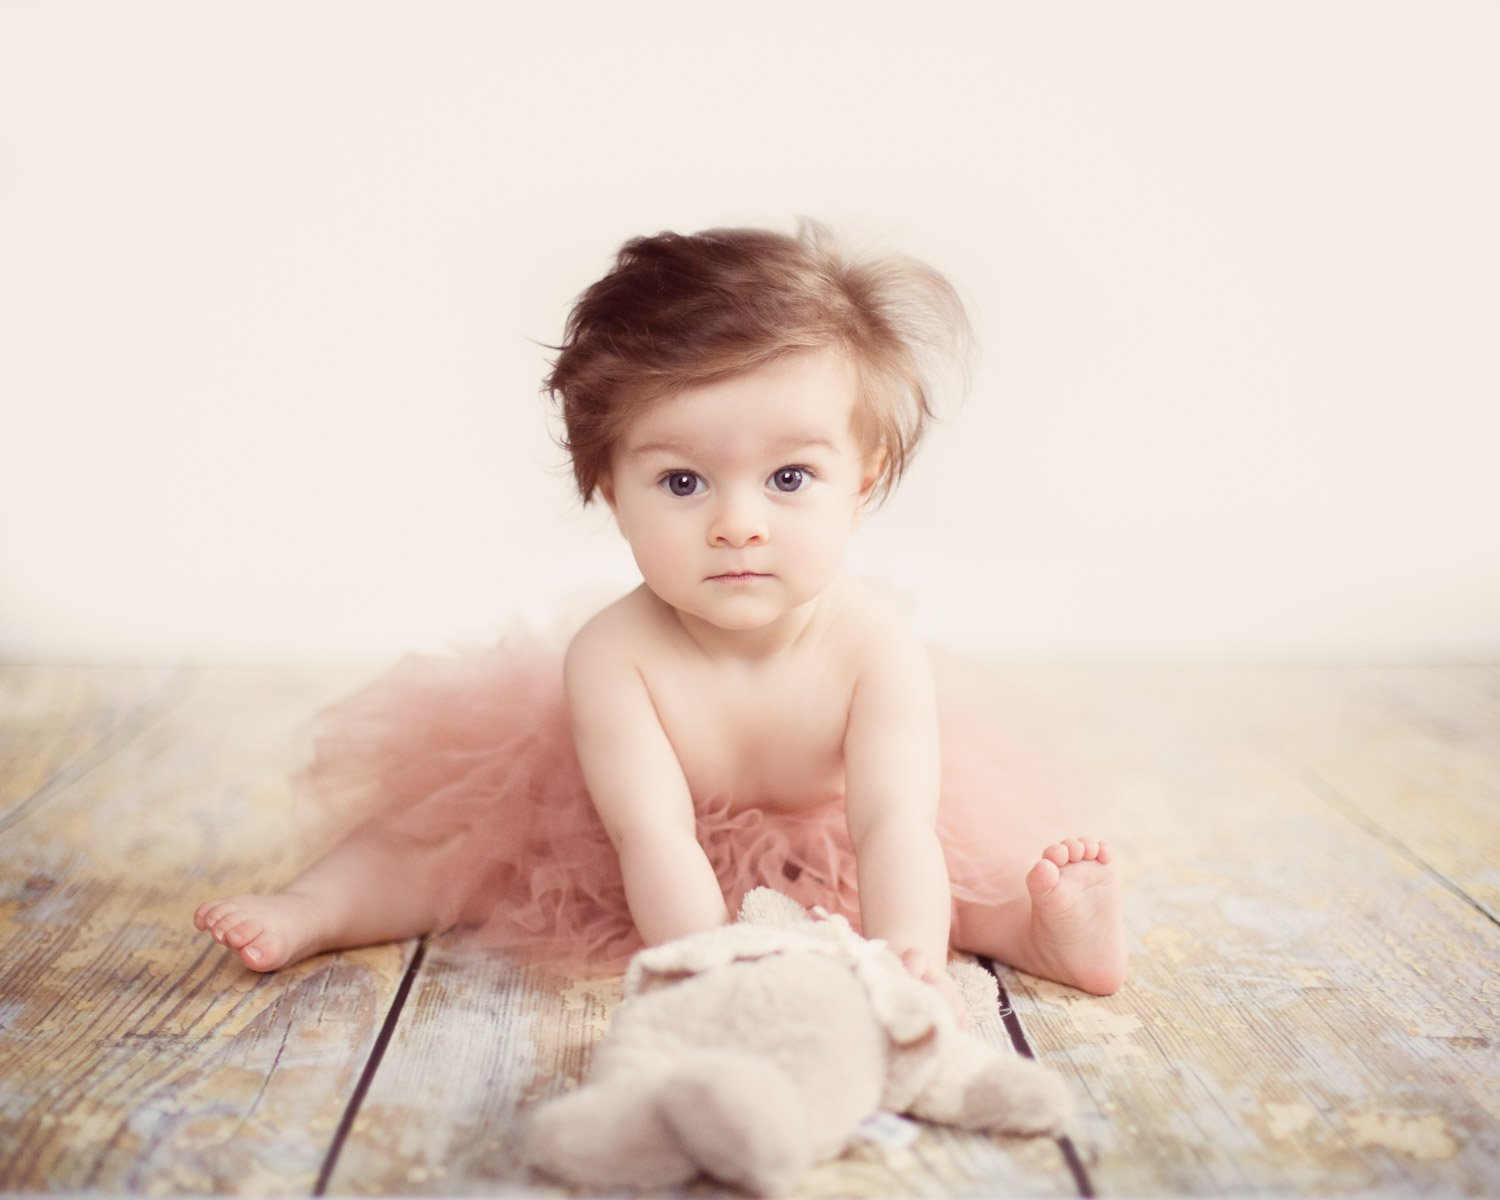 Baby girl in pink tutu holding teddy bear